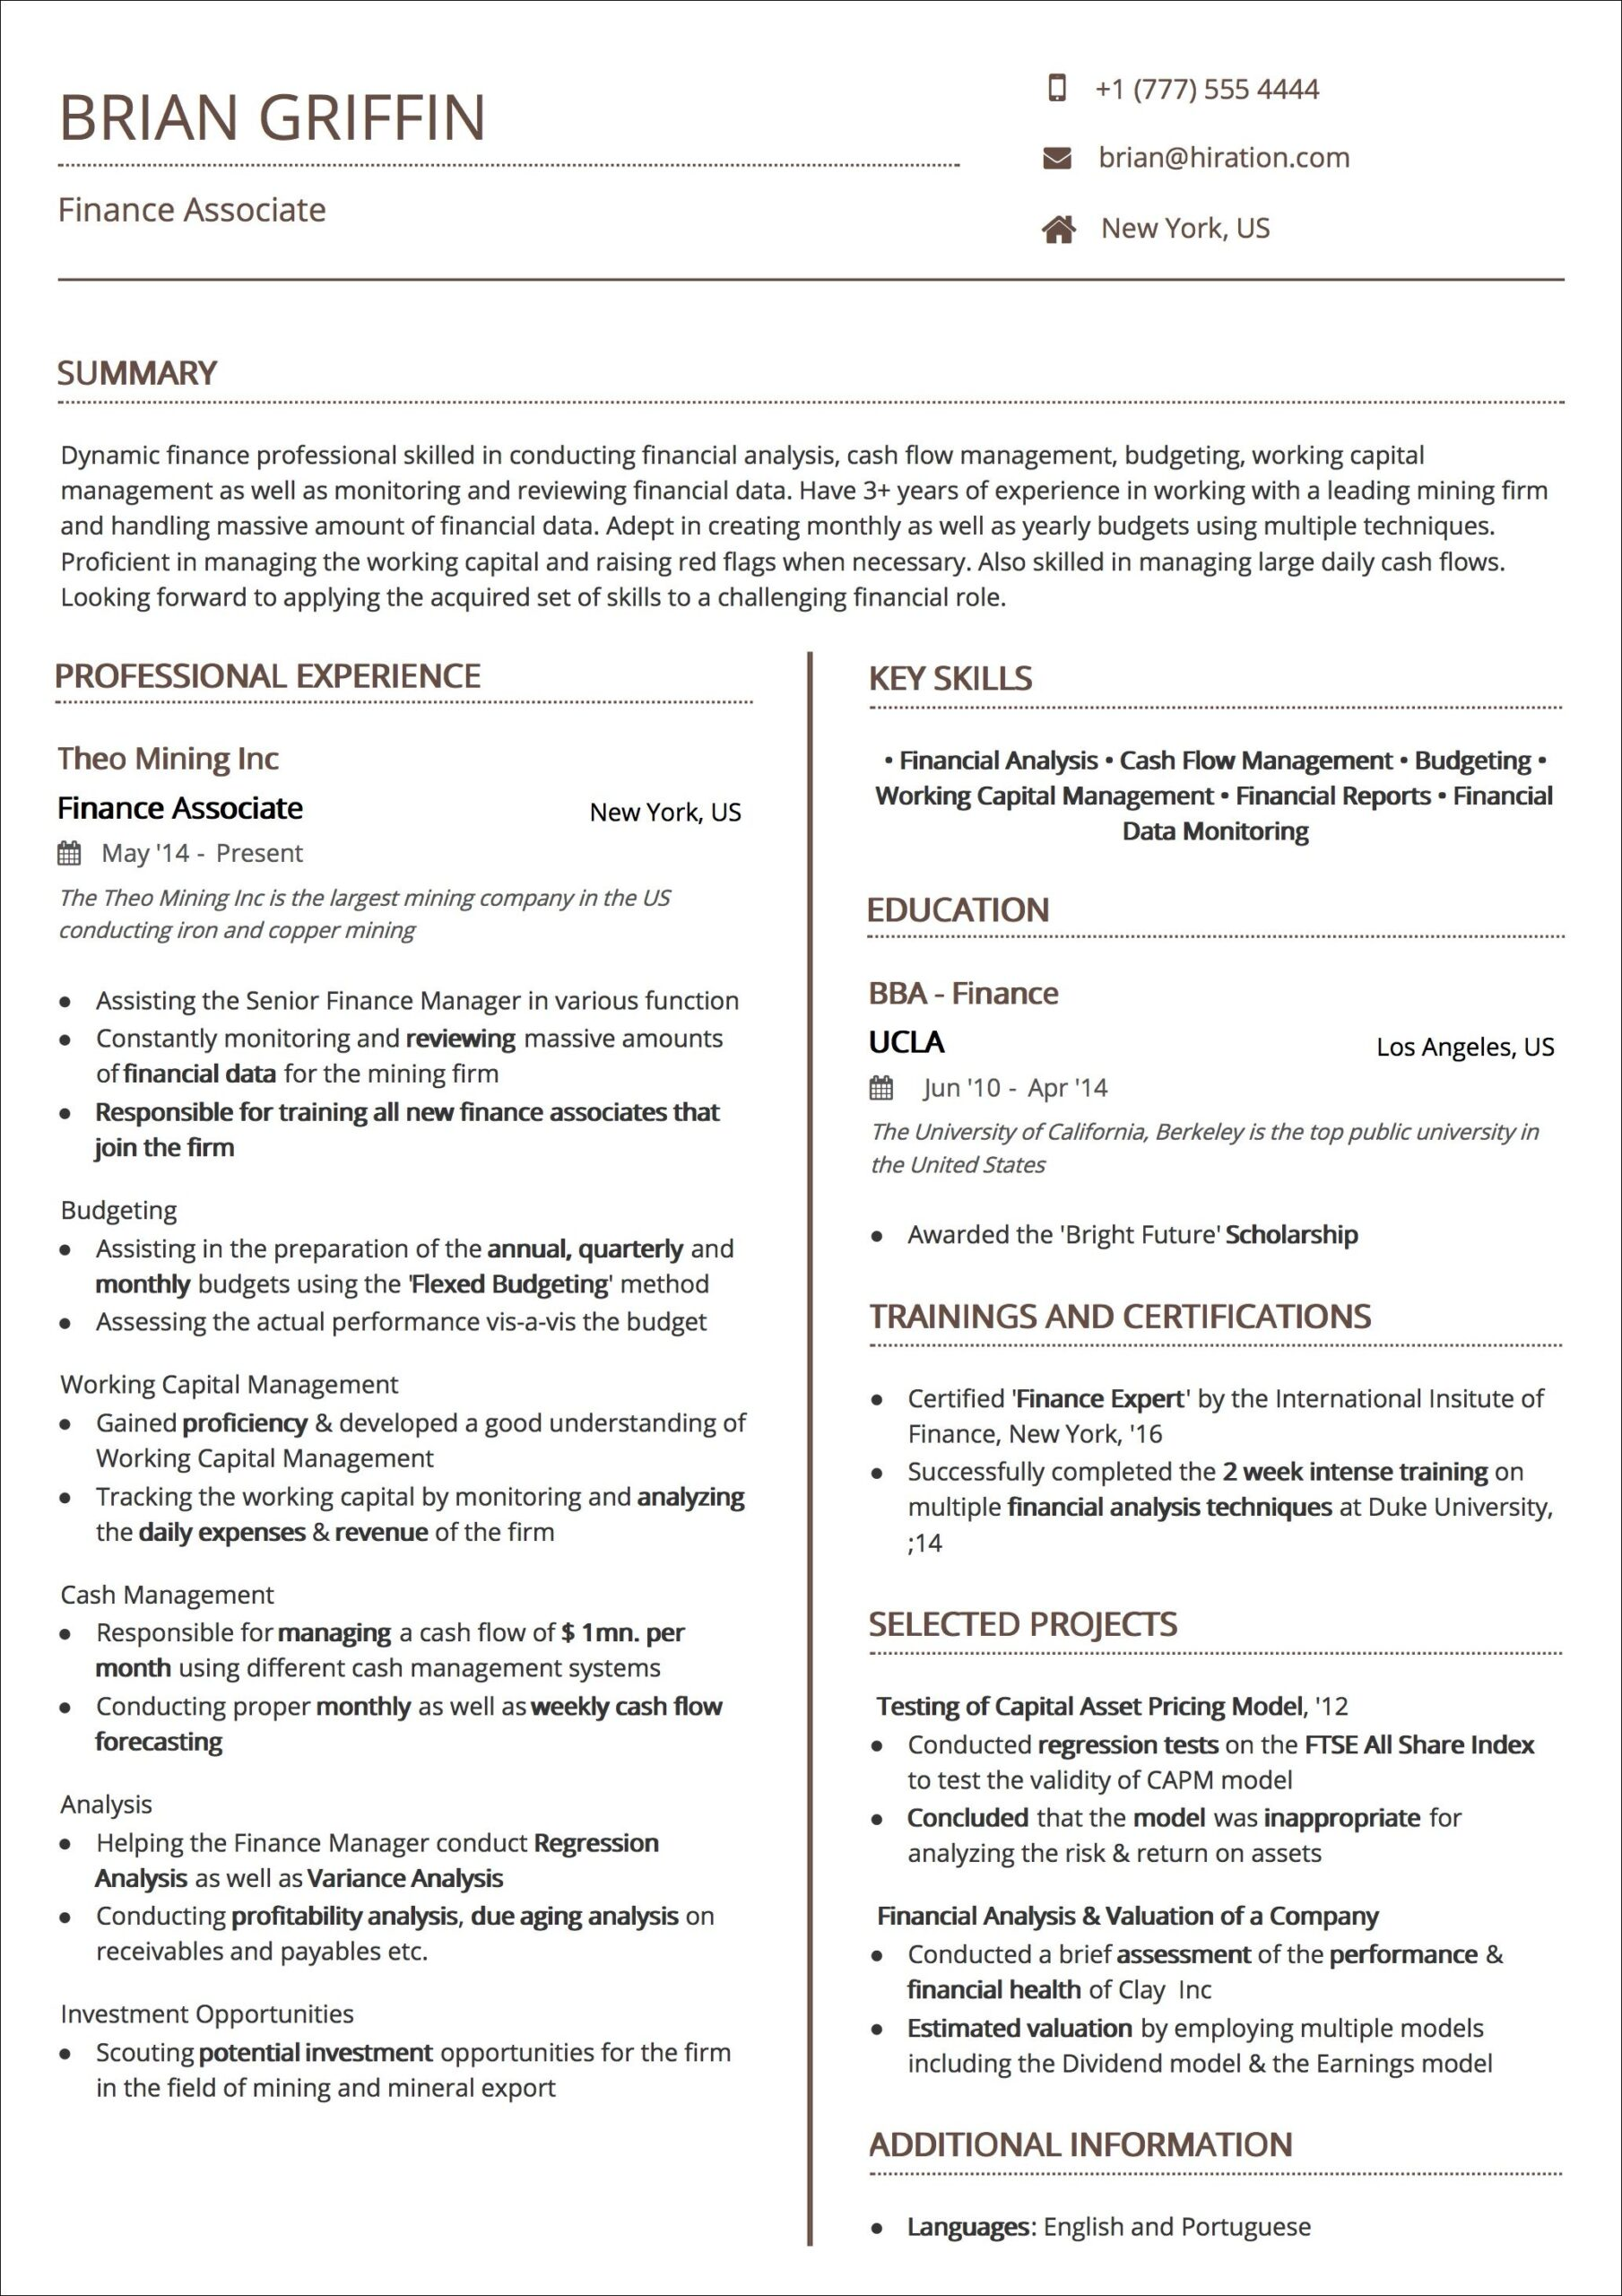 resume templates the guide to choosing best template two column format uniform full stack Resume Two Column Resume Format